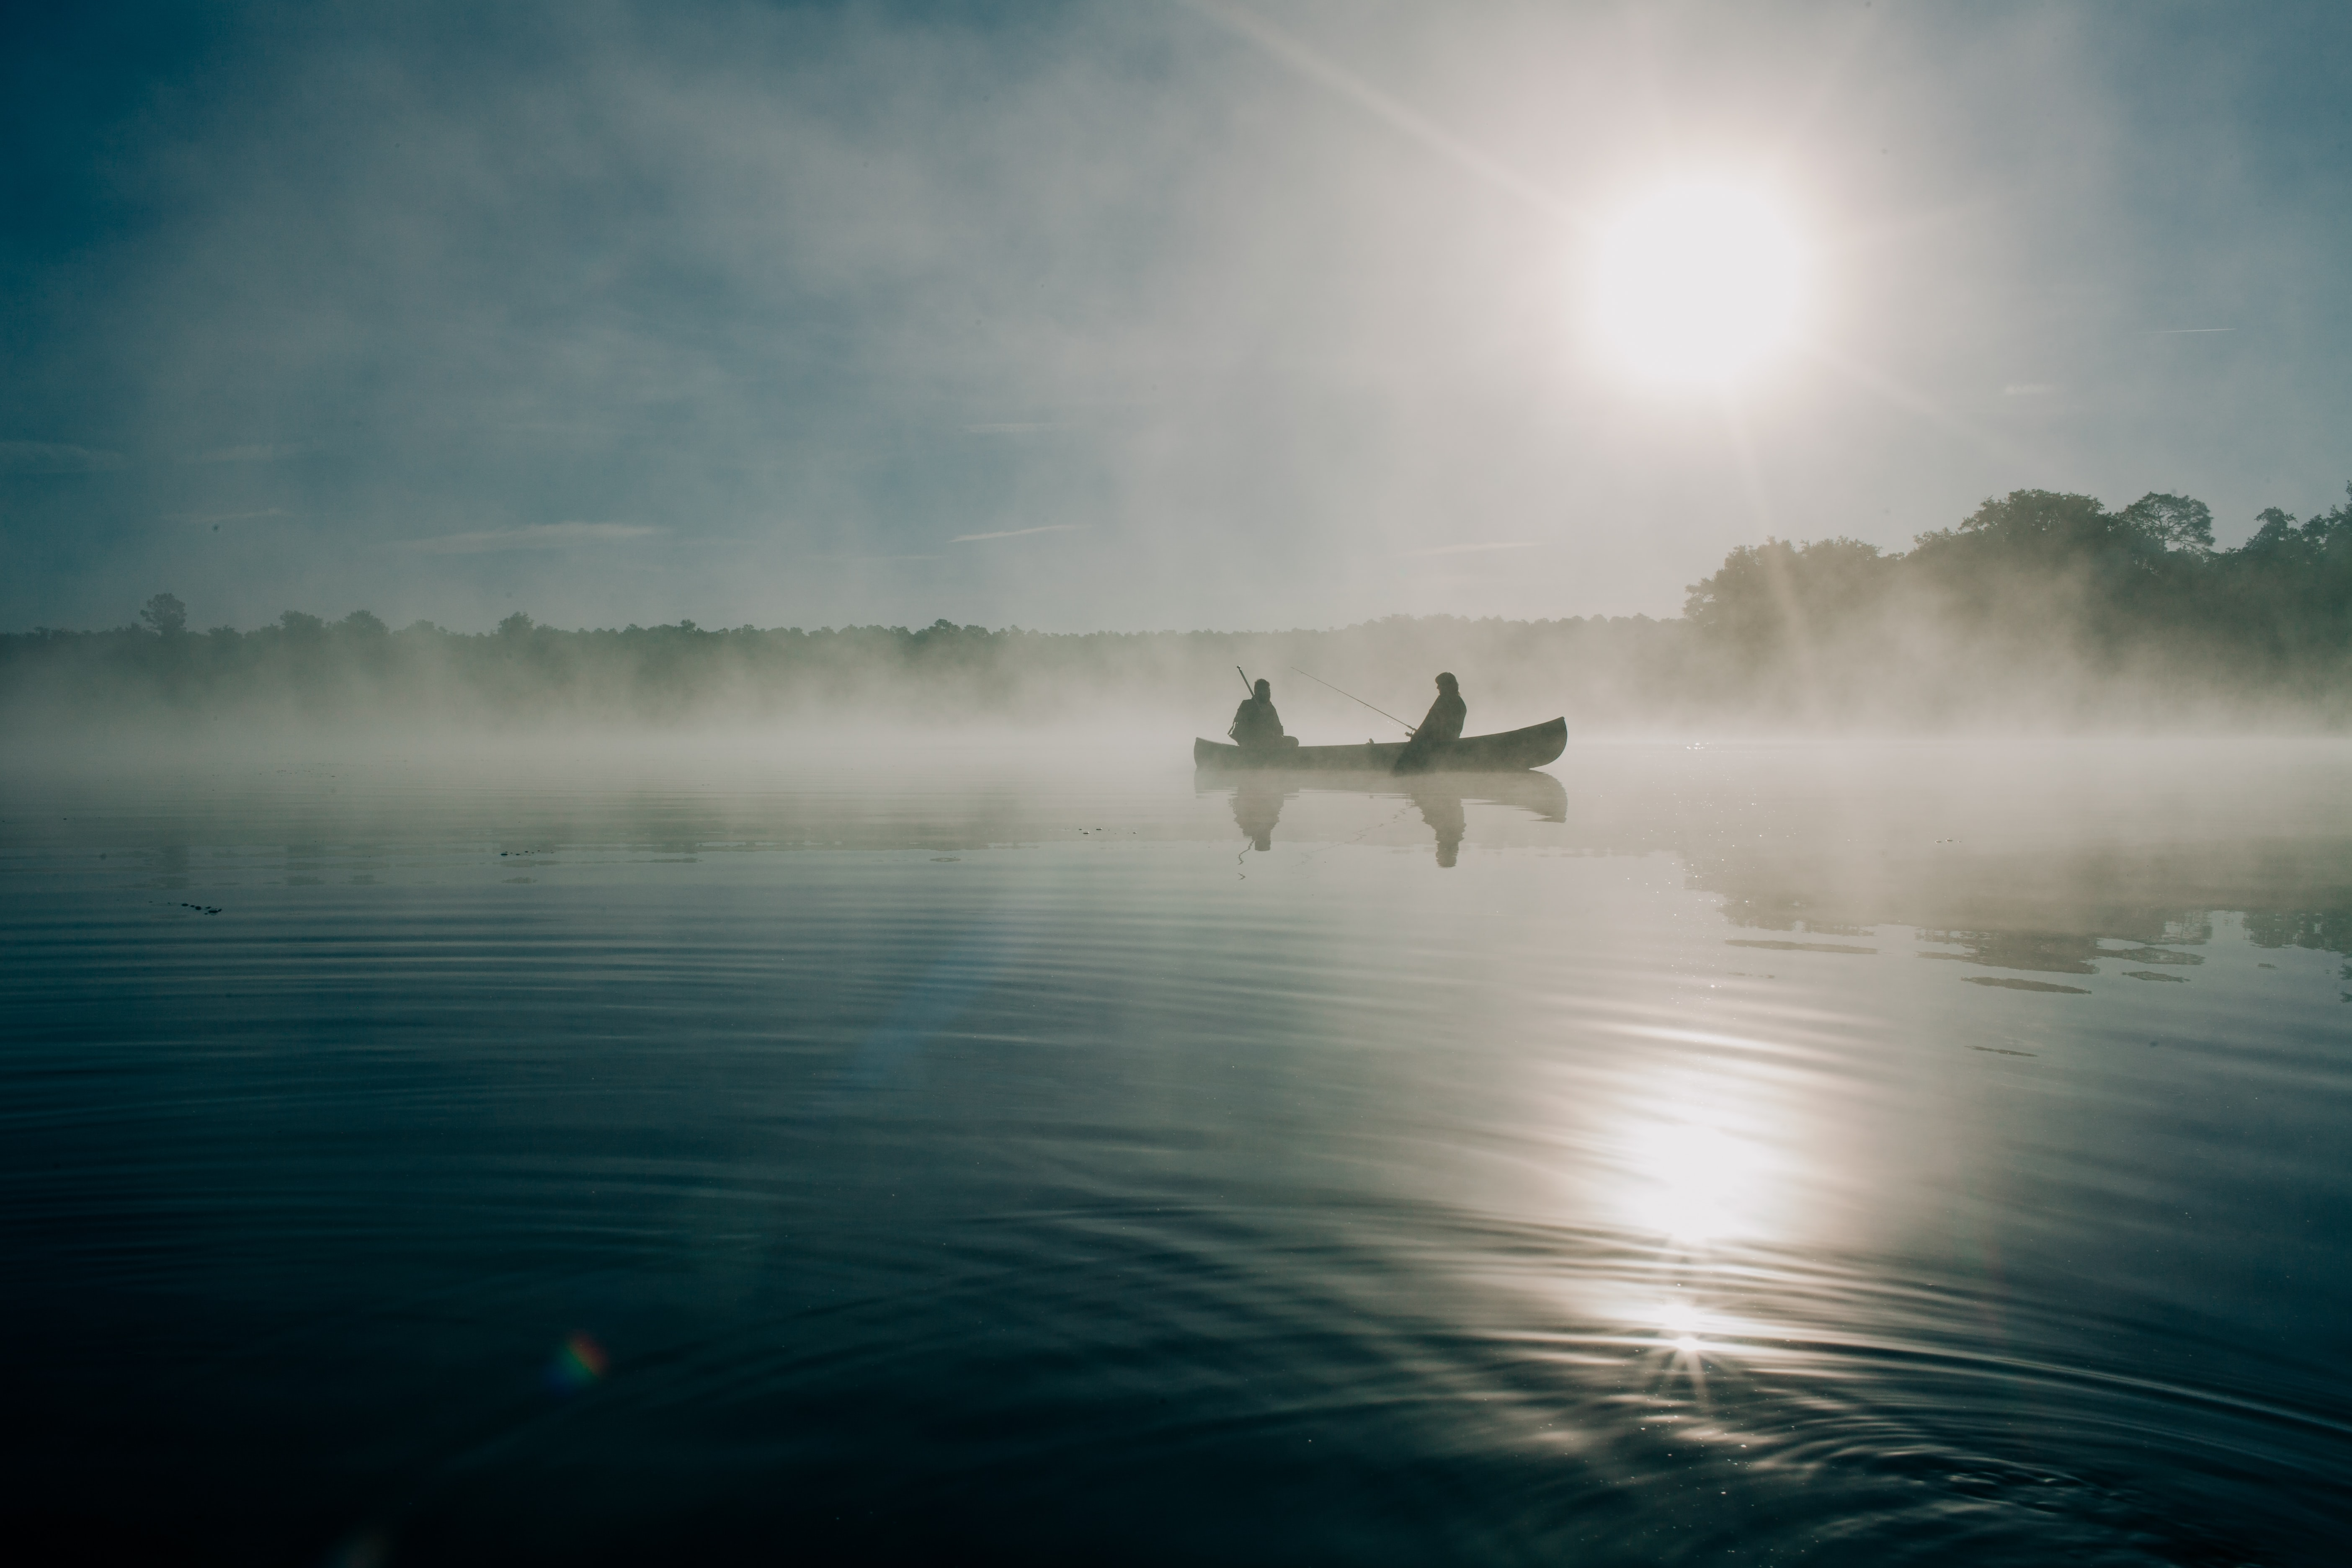 Fishing on a calm lake in Ocala on a sunny morning